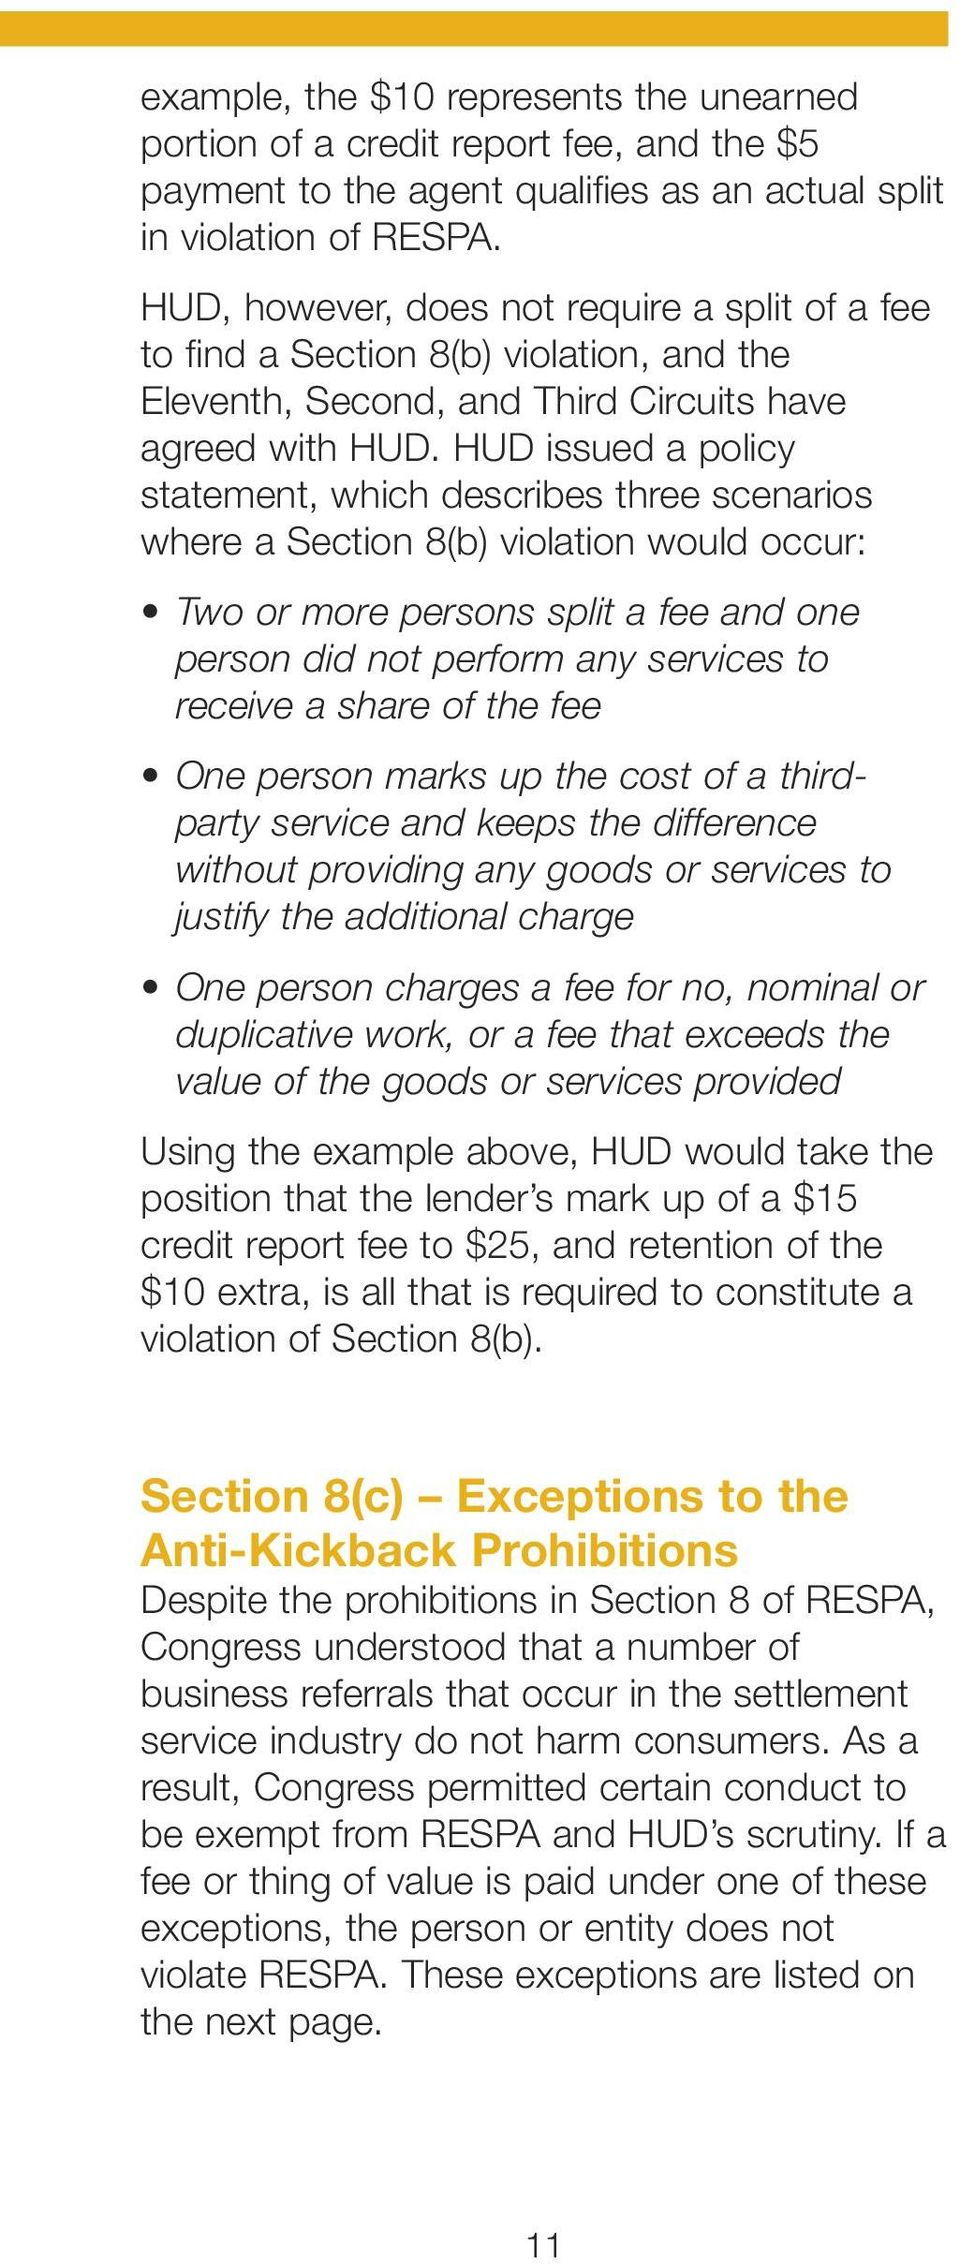 HUD issued a policy statement, which describes three scenarios where a Section 8(b) violation would occur: Two or more persons split a fee and one person did not perform any services to receive a